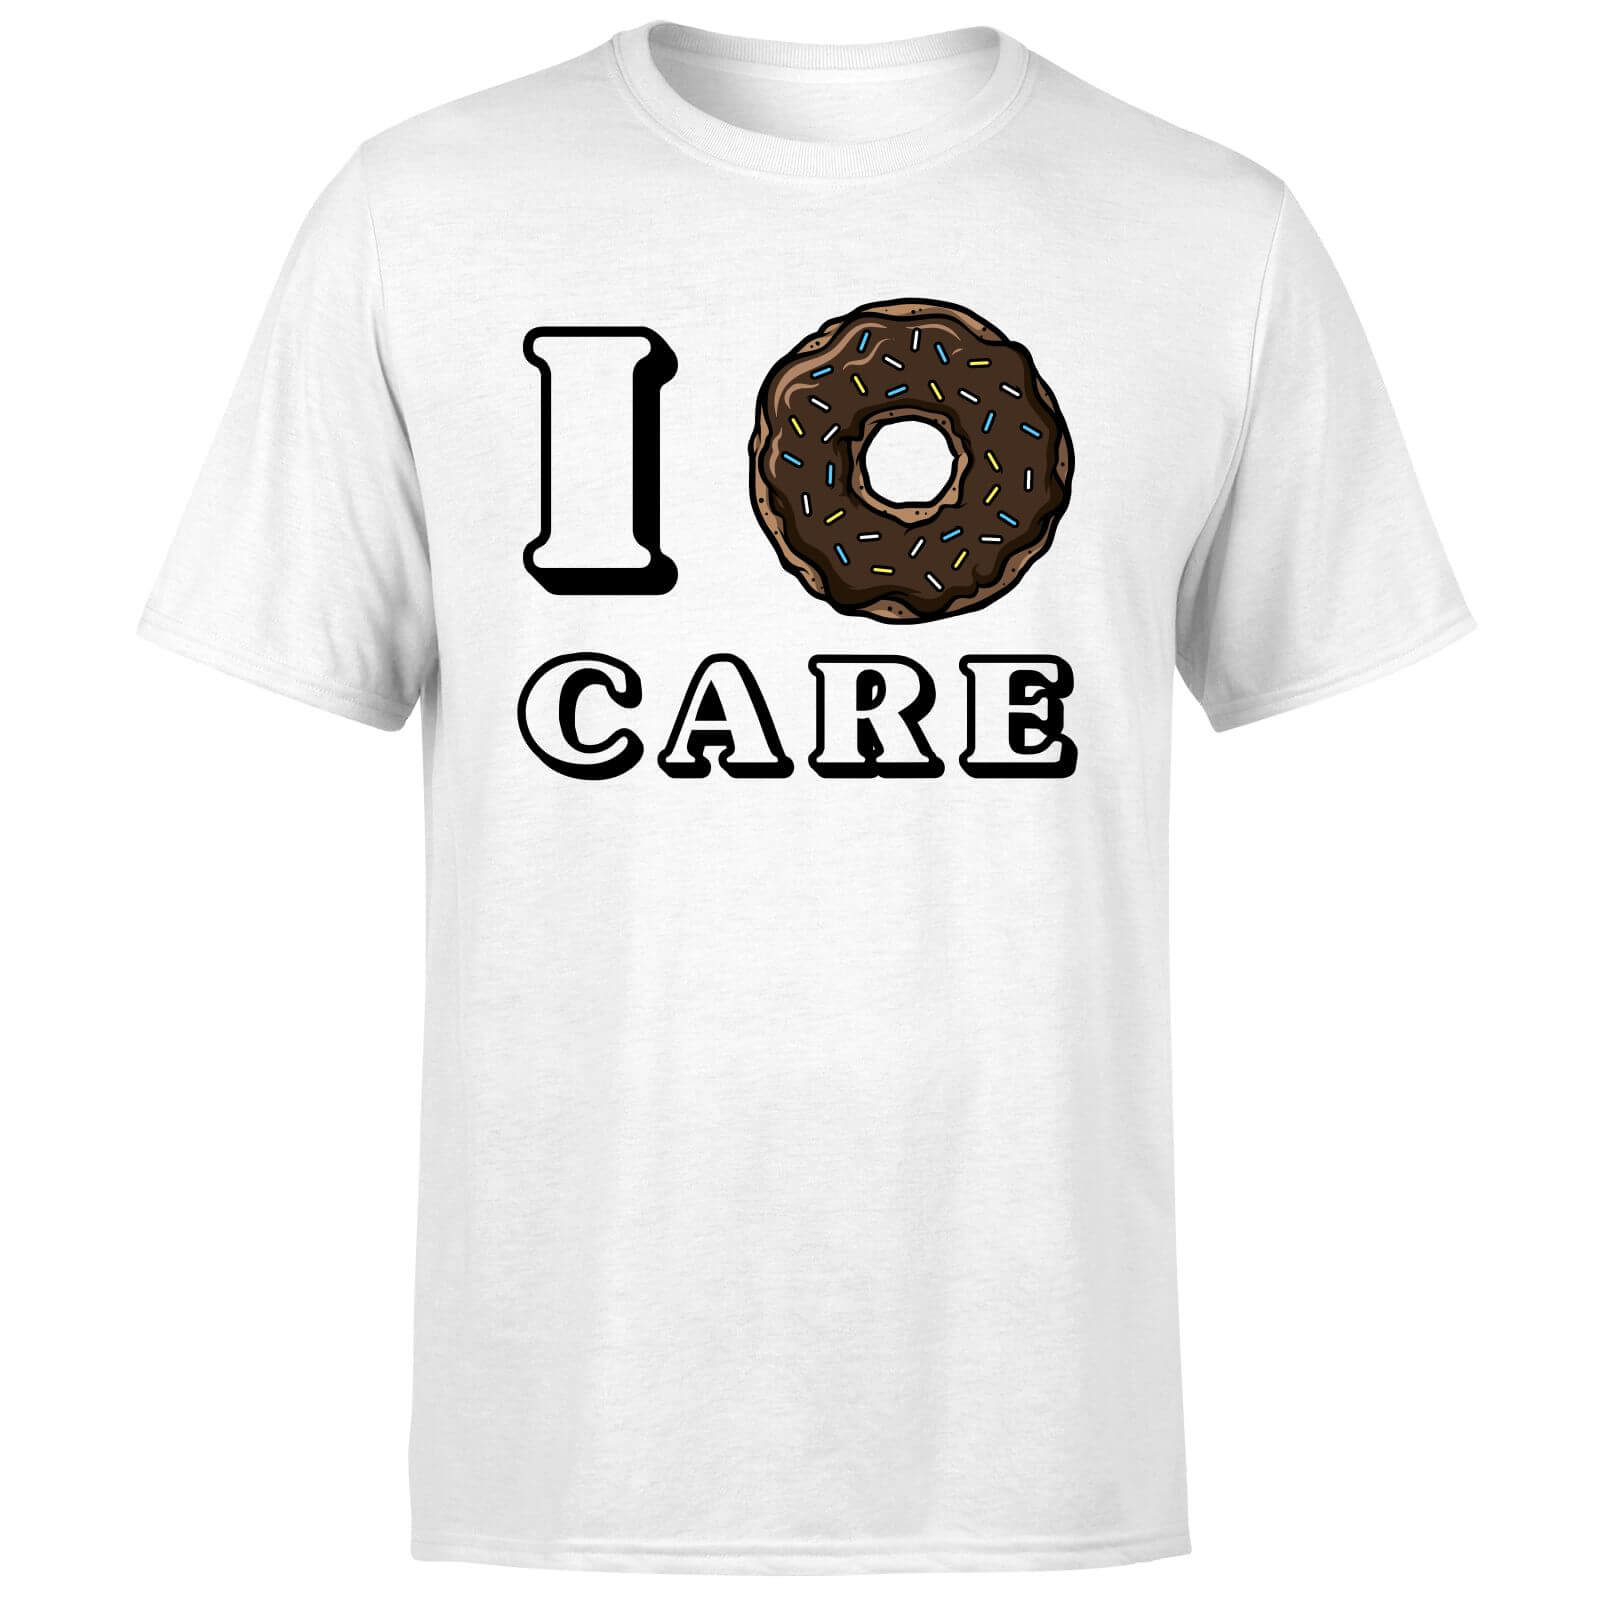 I Donut Care T-Shirt - White